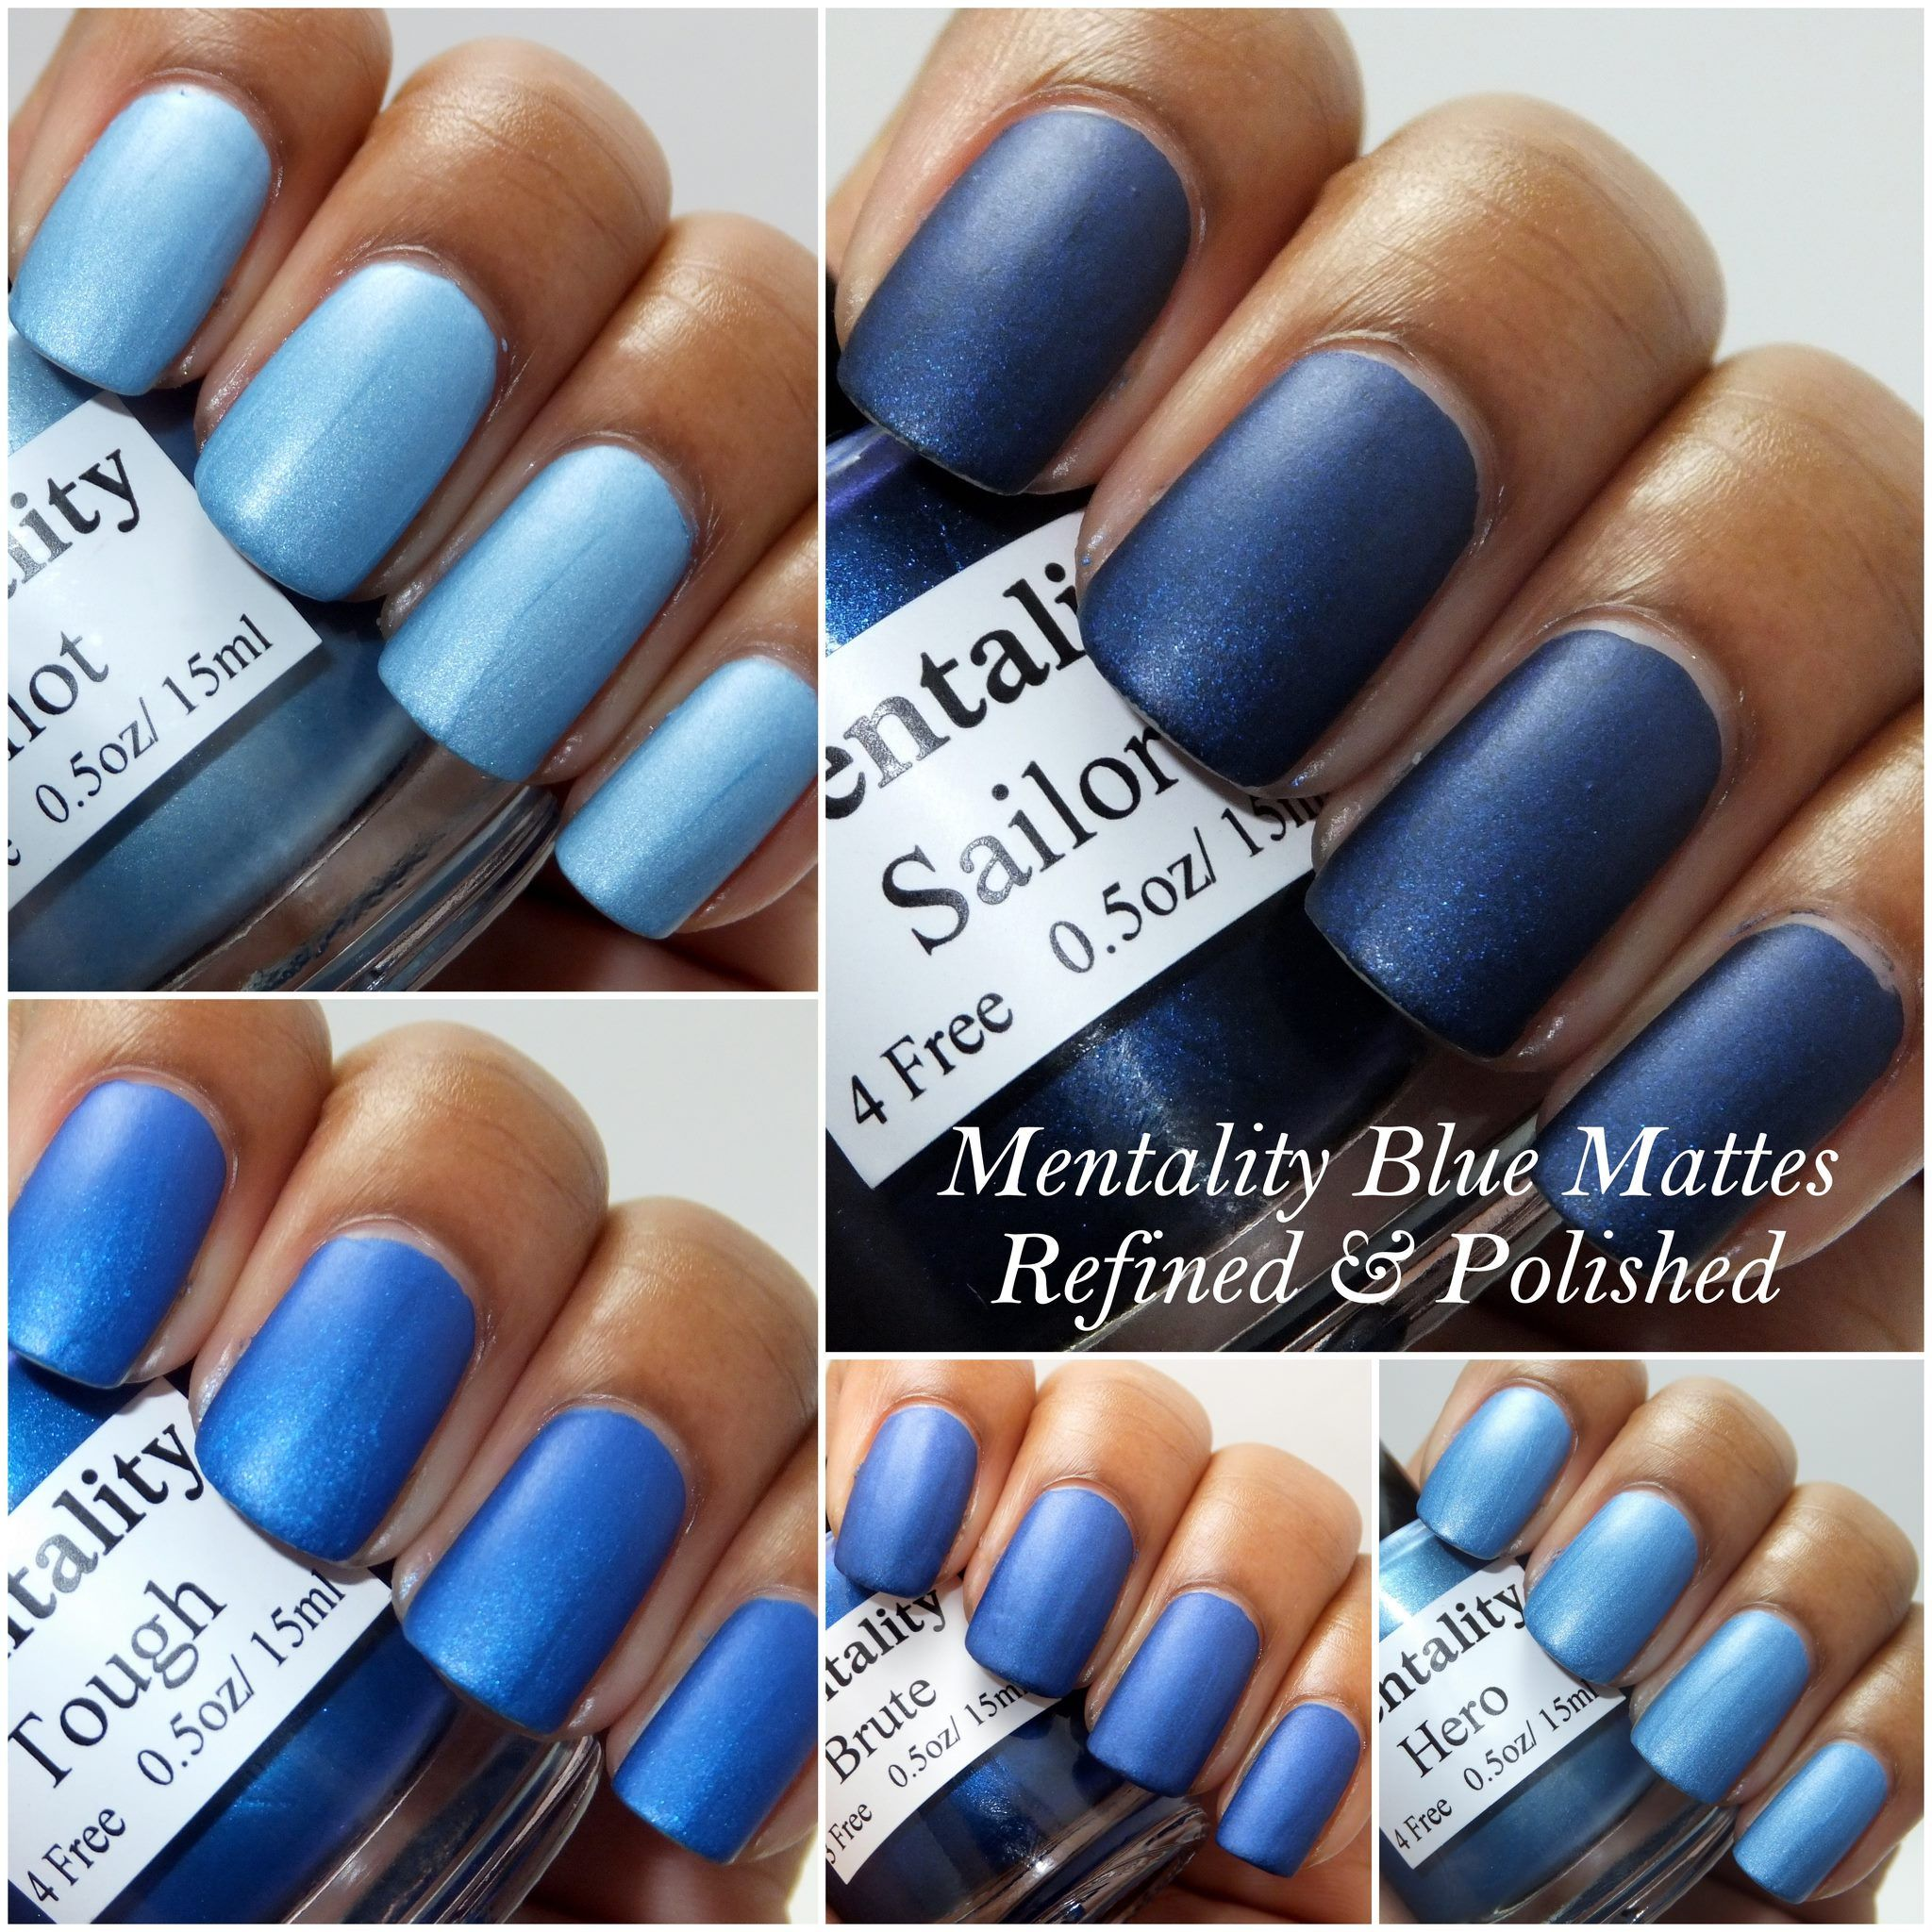 Mentality Nail Polish - Featuring the Pink Matte